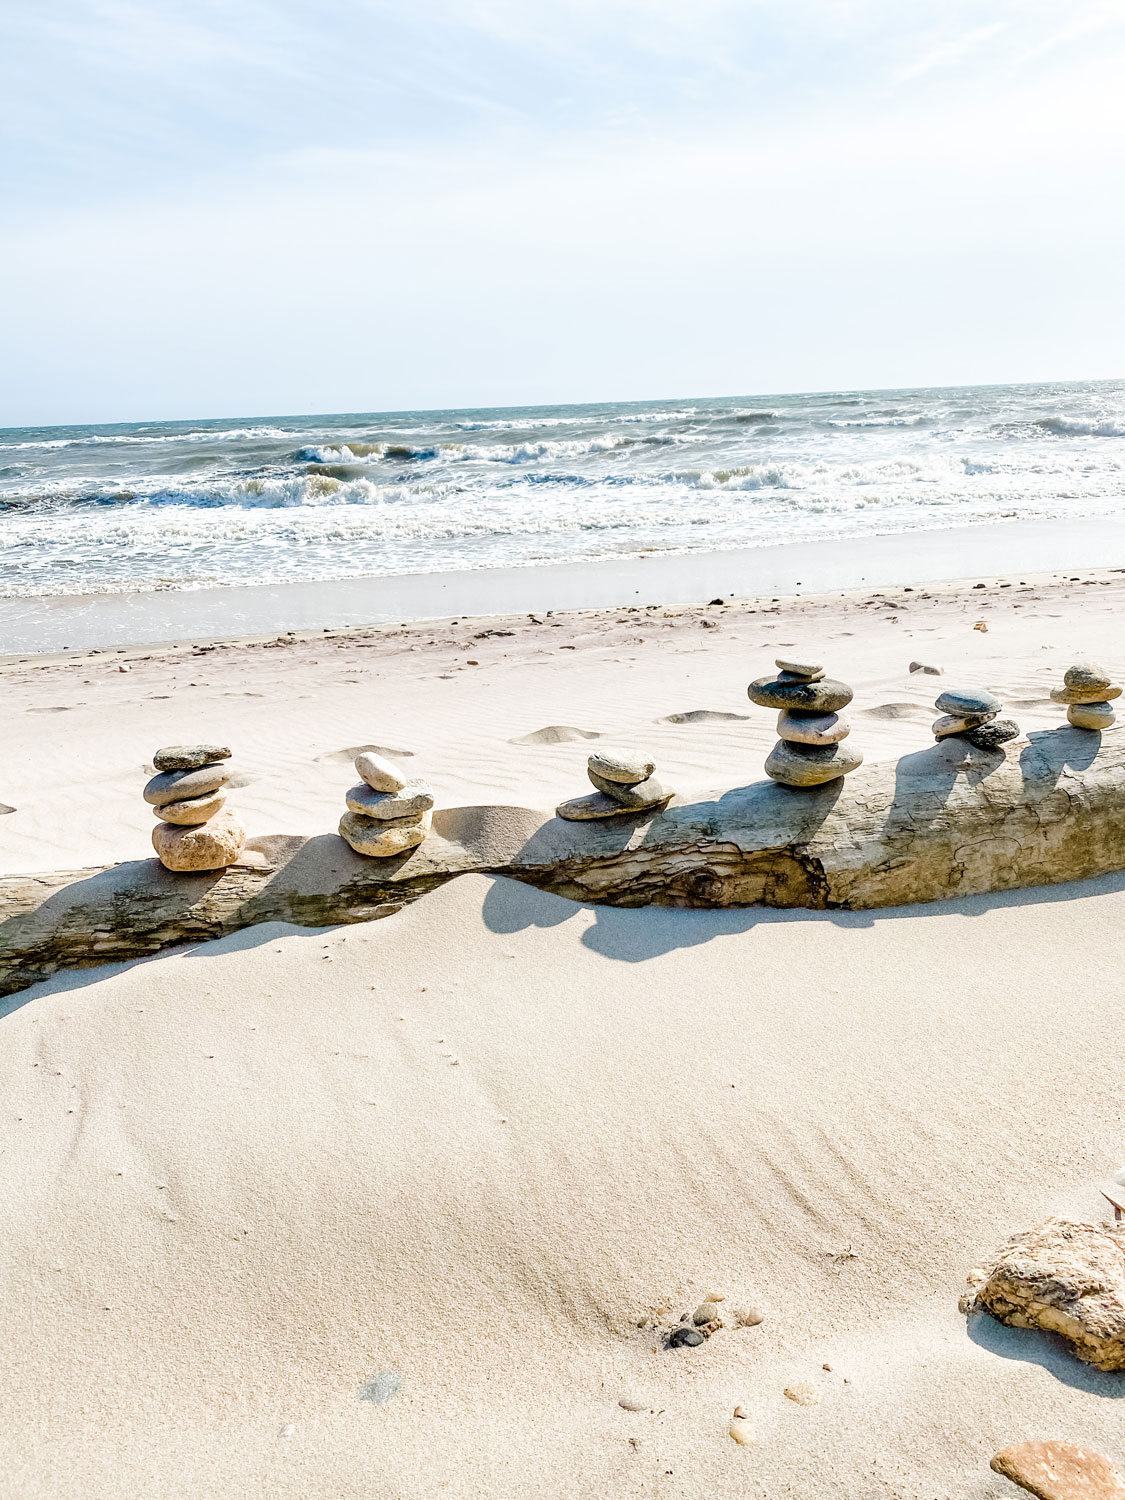 stacked rocks on driftwood at the beach